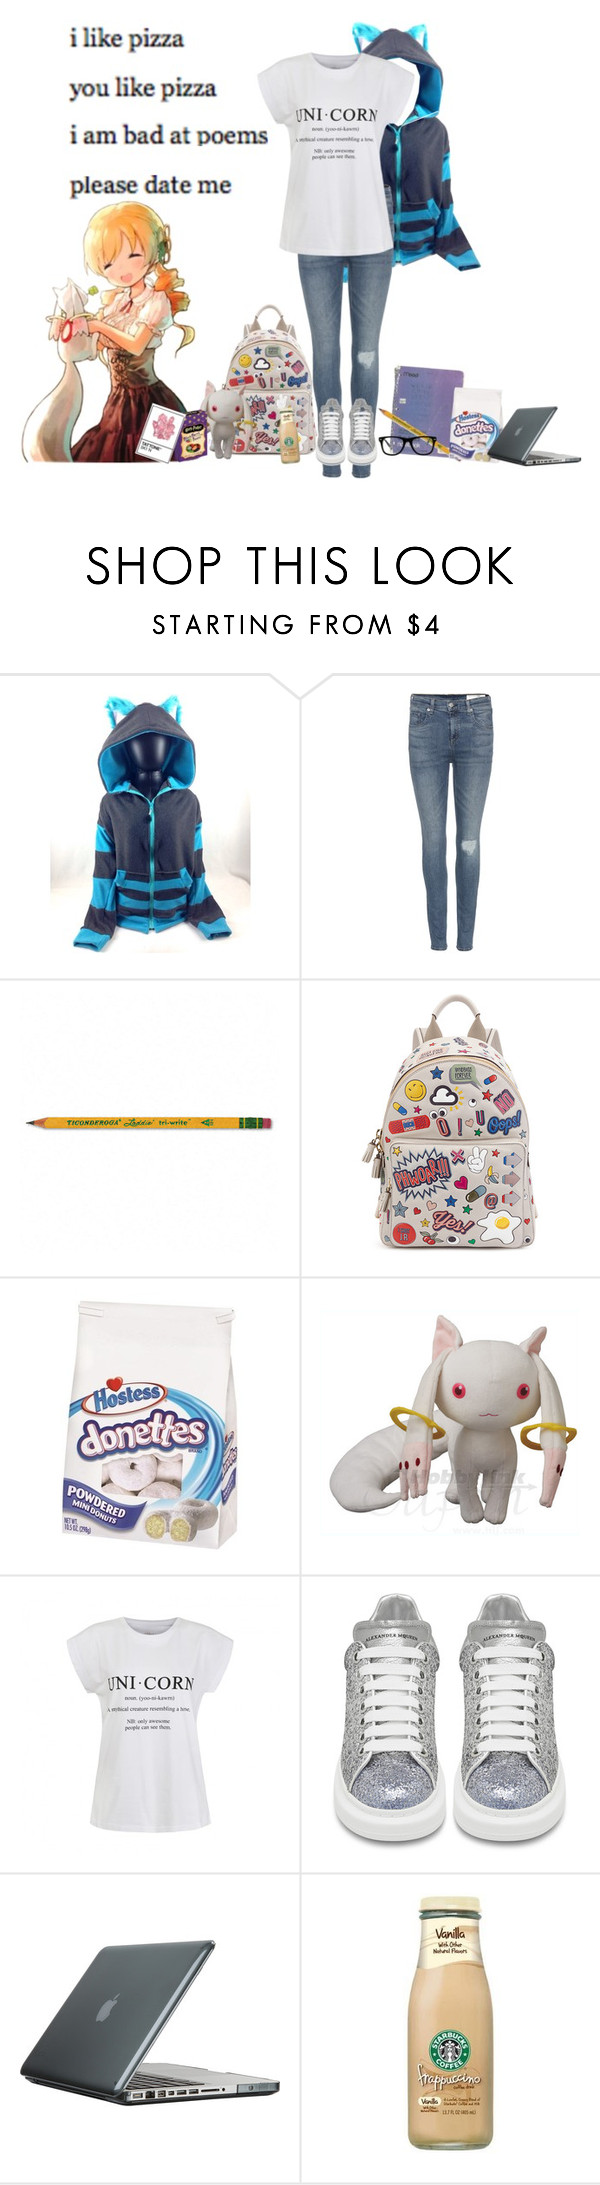 """""""My day"""" by wynysc23 ❤ liked on Polyvore featuring rag & bone, Dixon Ticonderoga, Anya Hindmarch, Hostess, Puella, Ally Fashion, Alexander McQueen, Speck and Muse"""